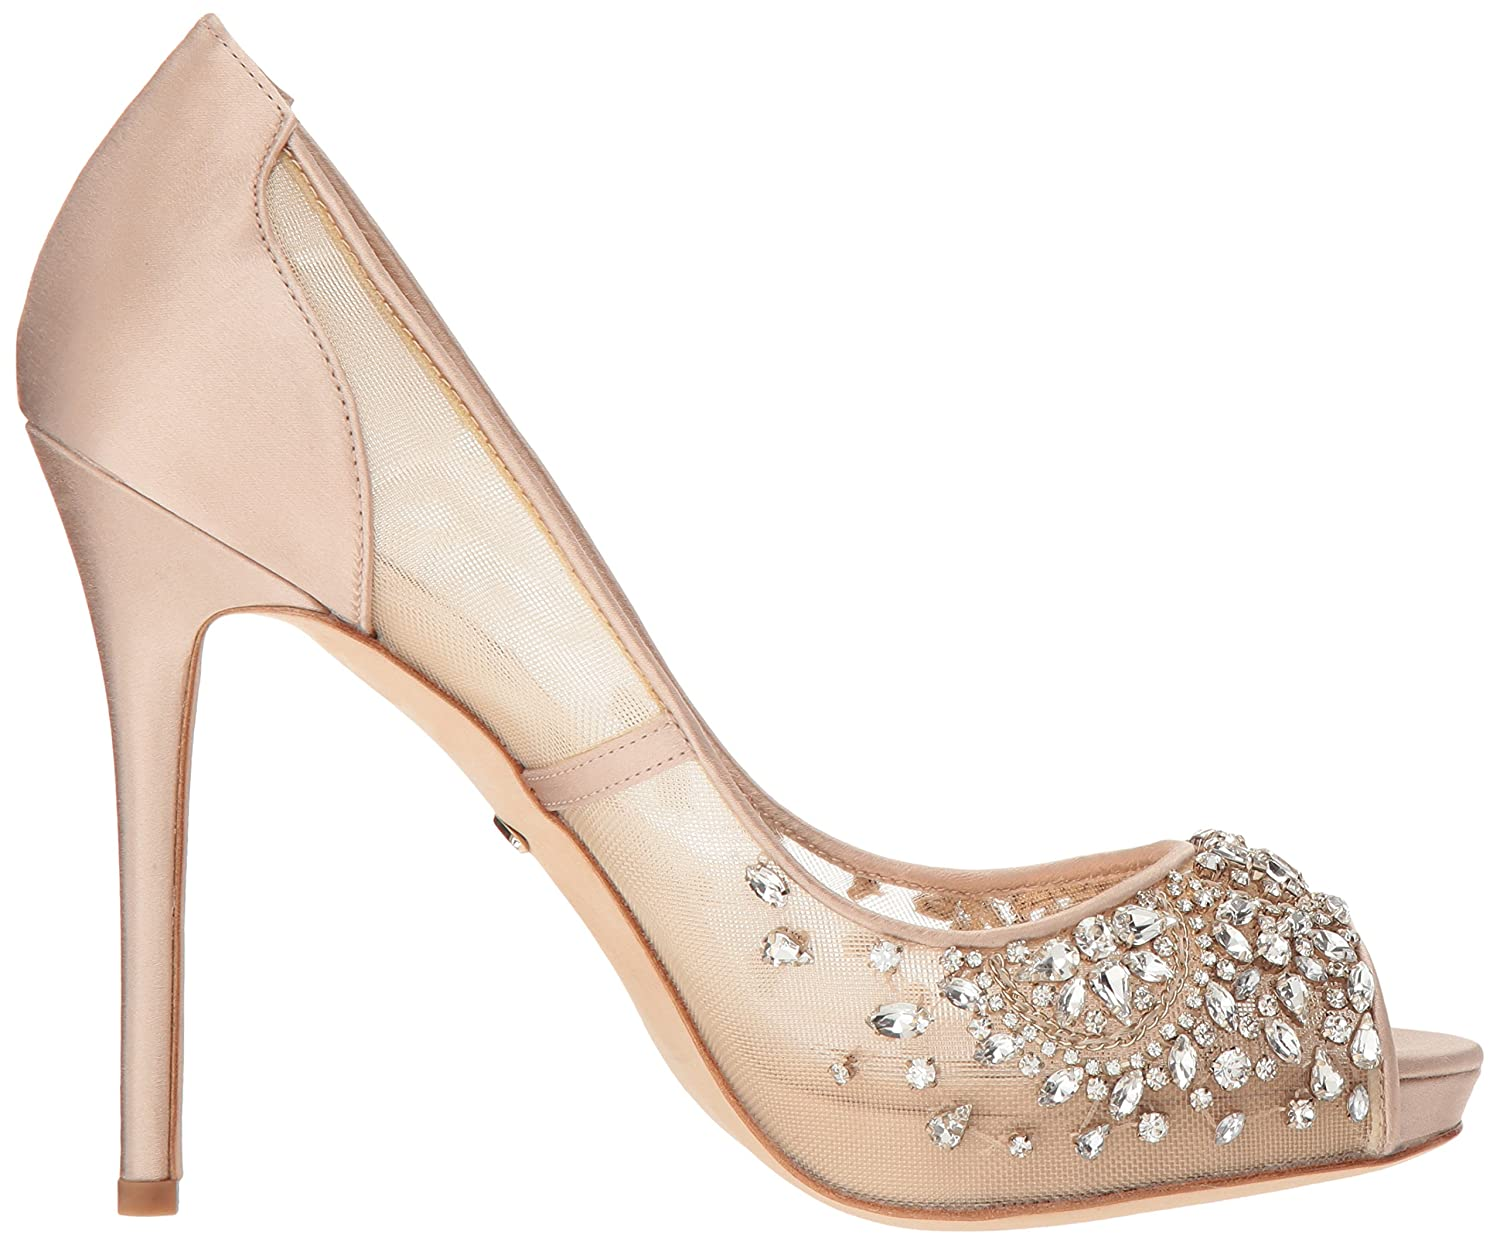 Badgley Mischka Womens Pepper Pump